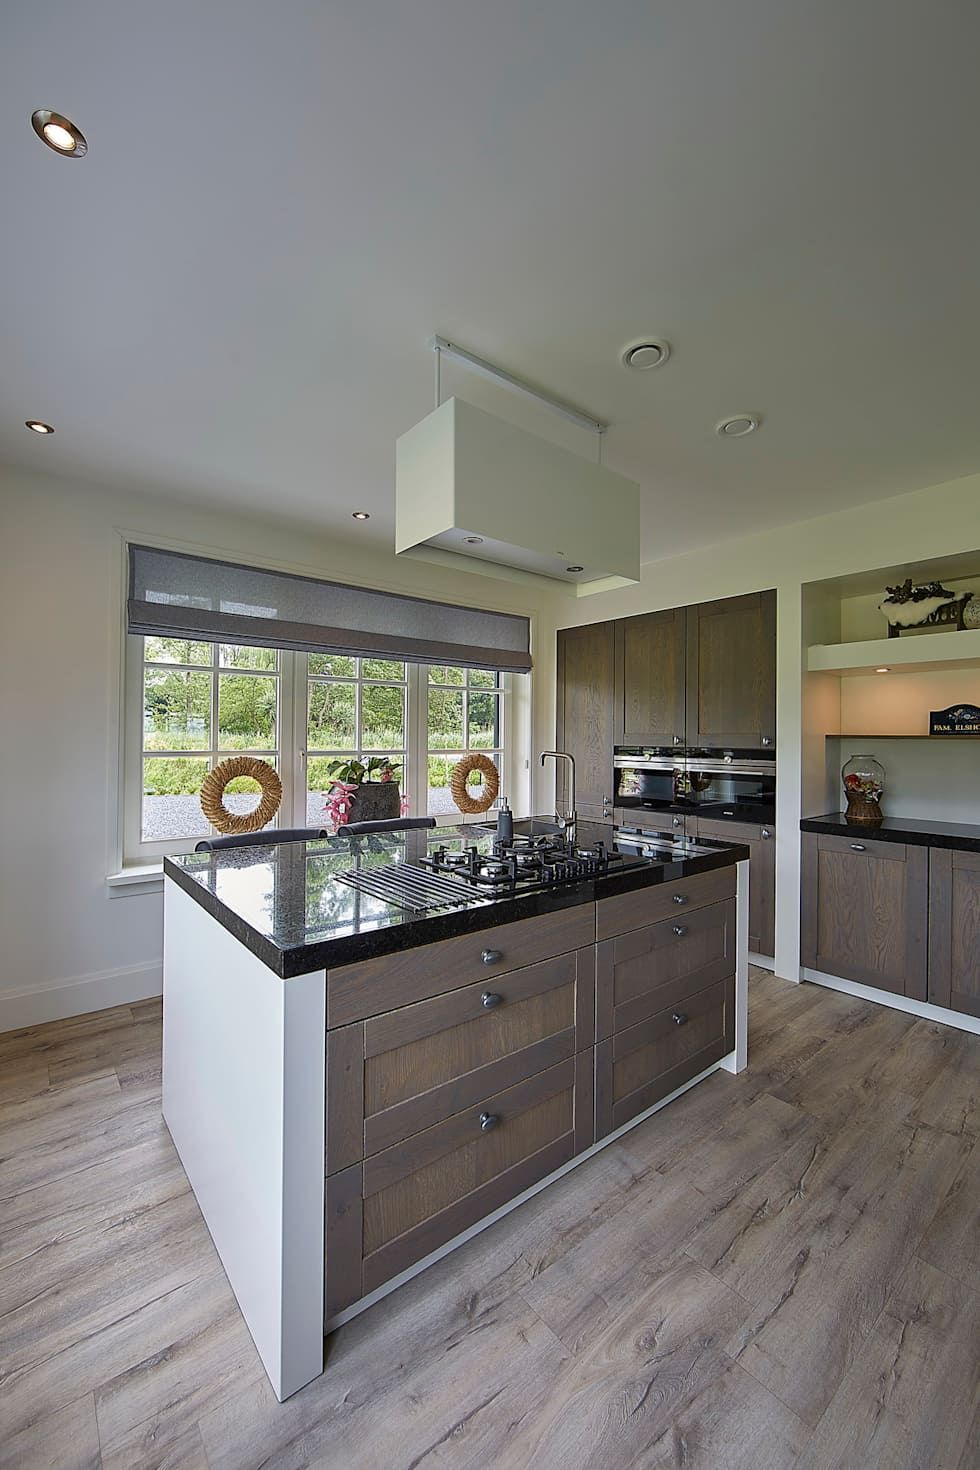 25 Stone Flooring Ideas With Pros And Cons: 29+ Kitchen Flooring Ideas & Design